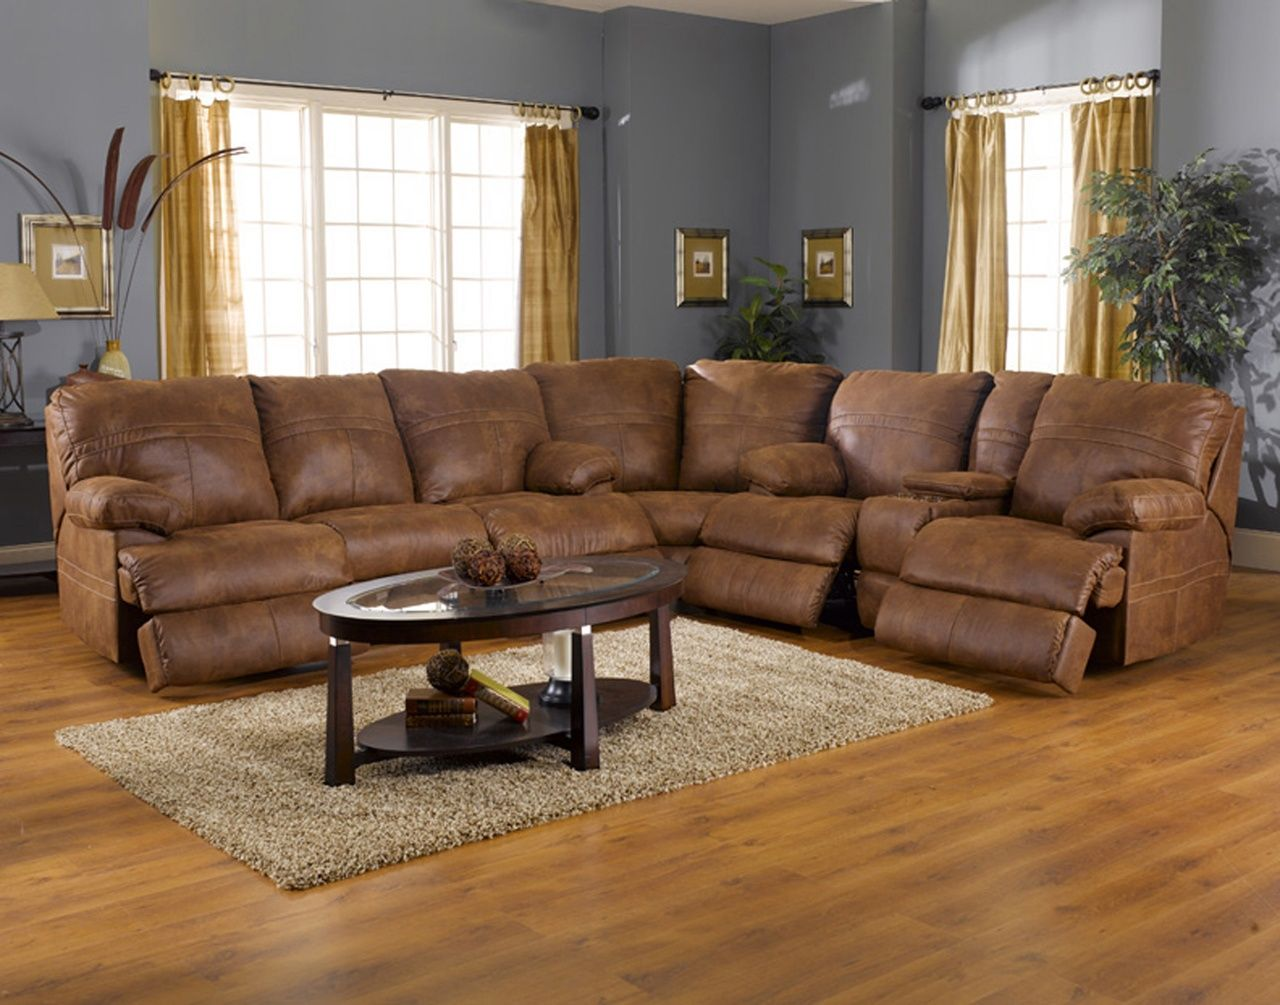 Leather Sectional Sofa With Recliner Sectional Sofa With